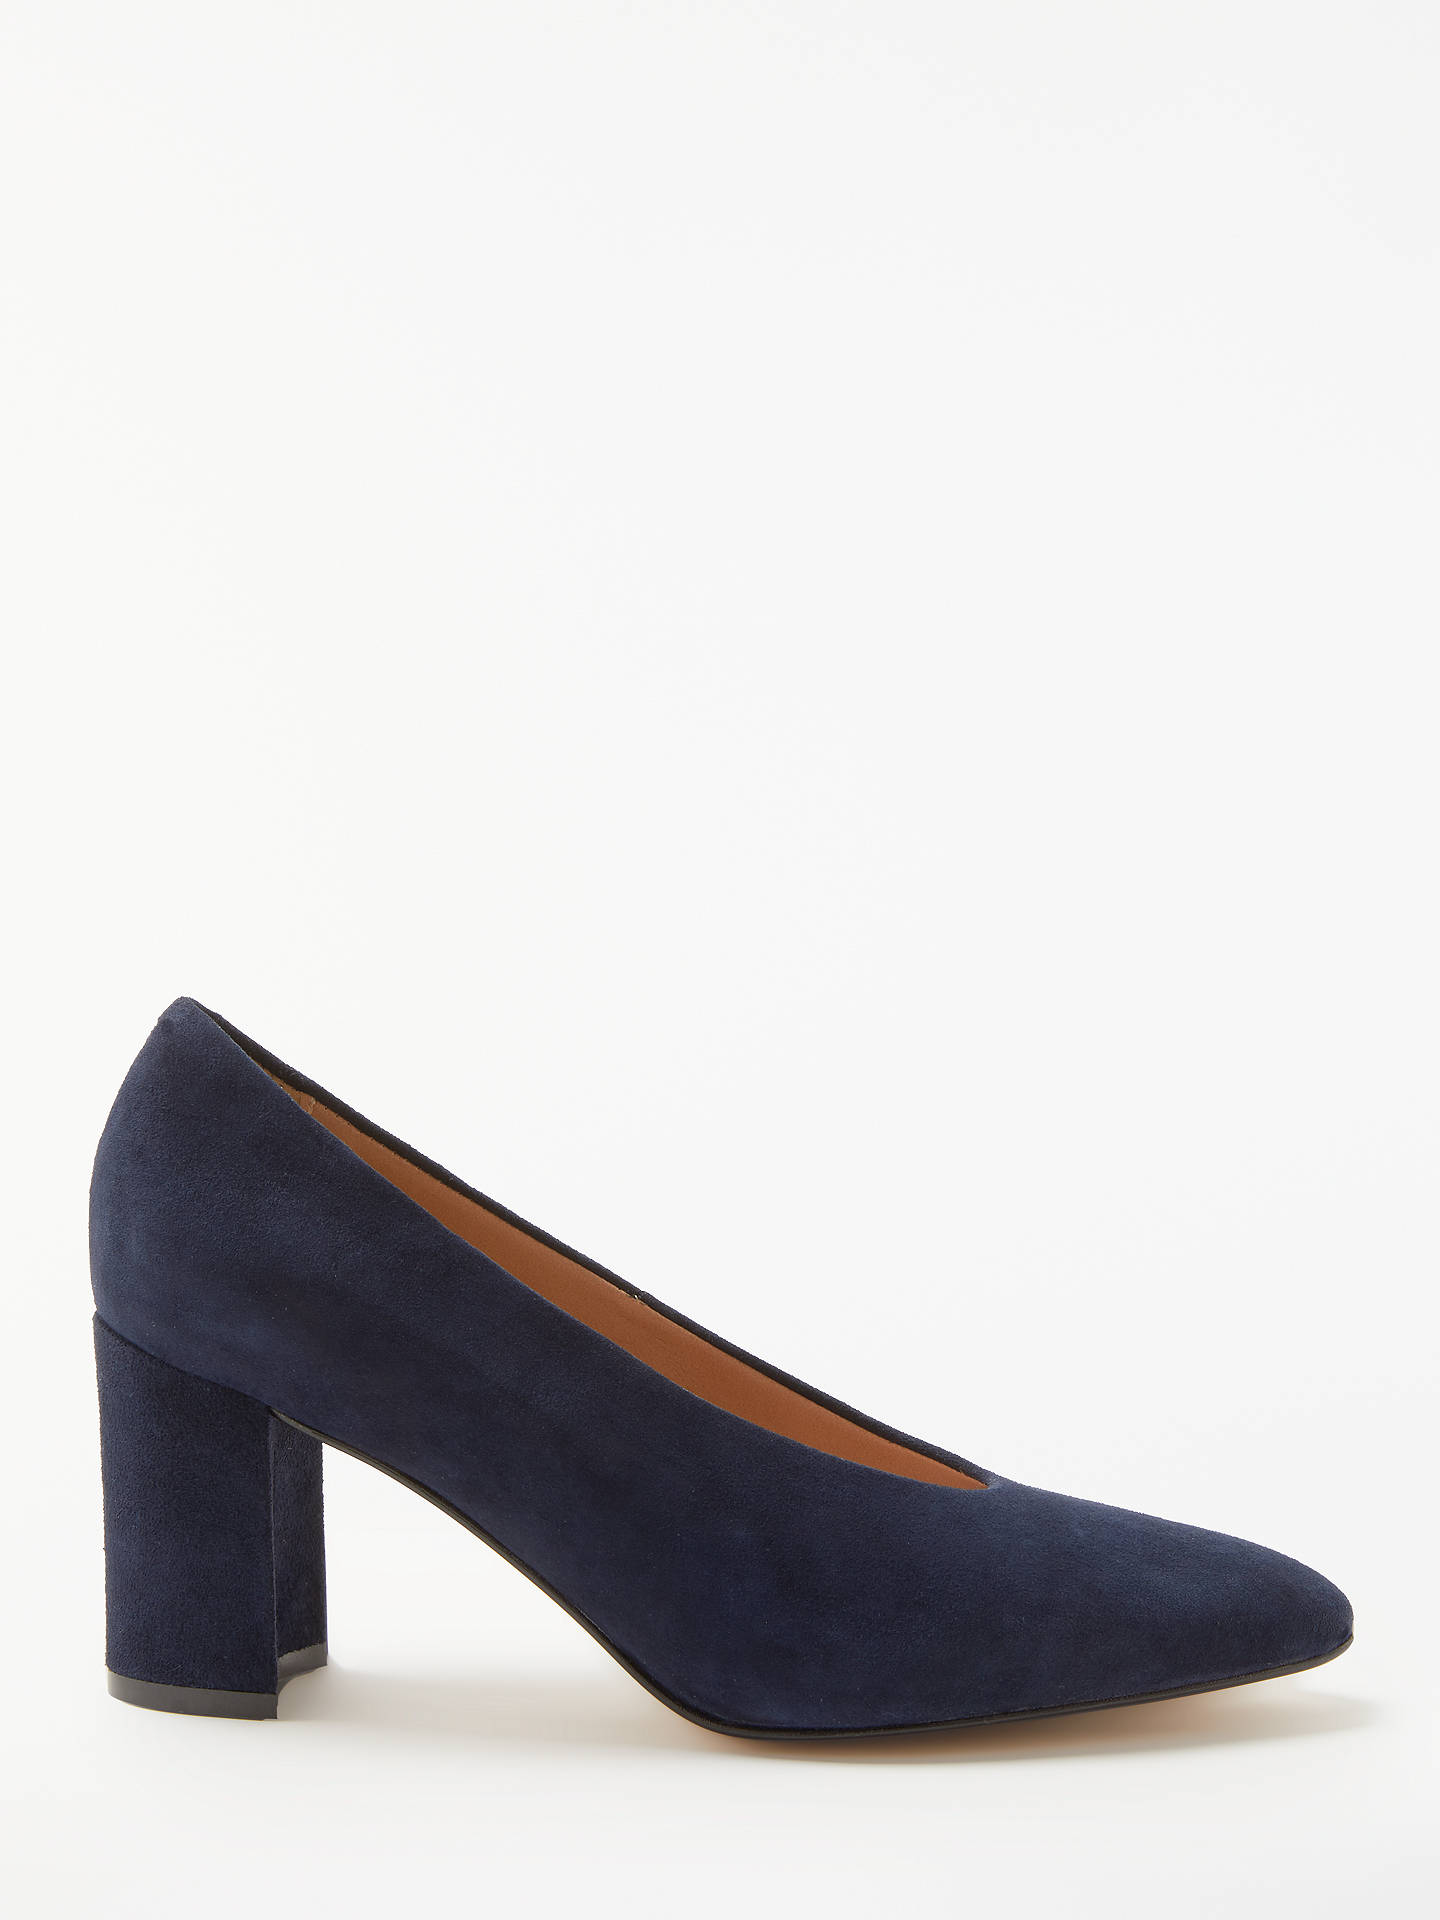 Fashion style Lewis John high heels latest collection footwear for woman